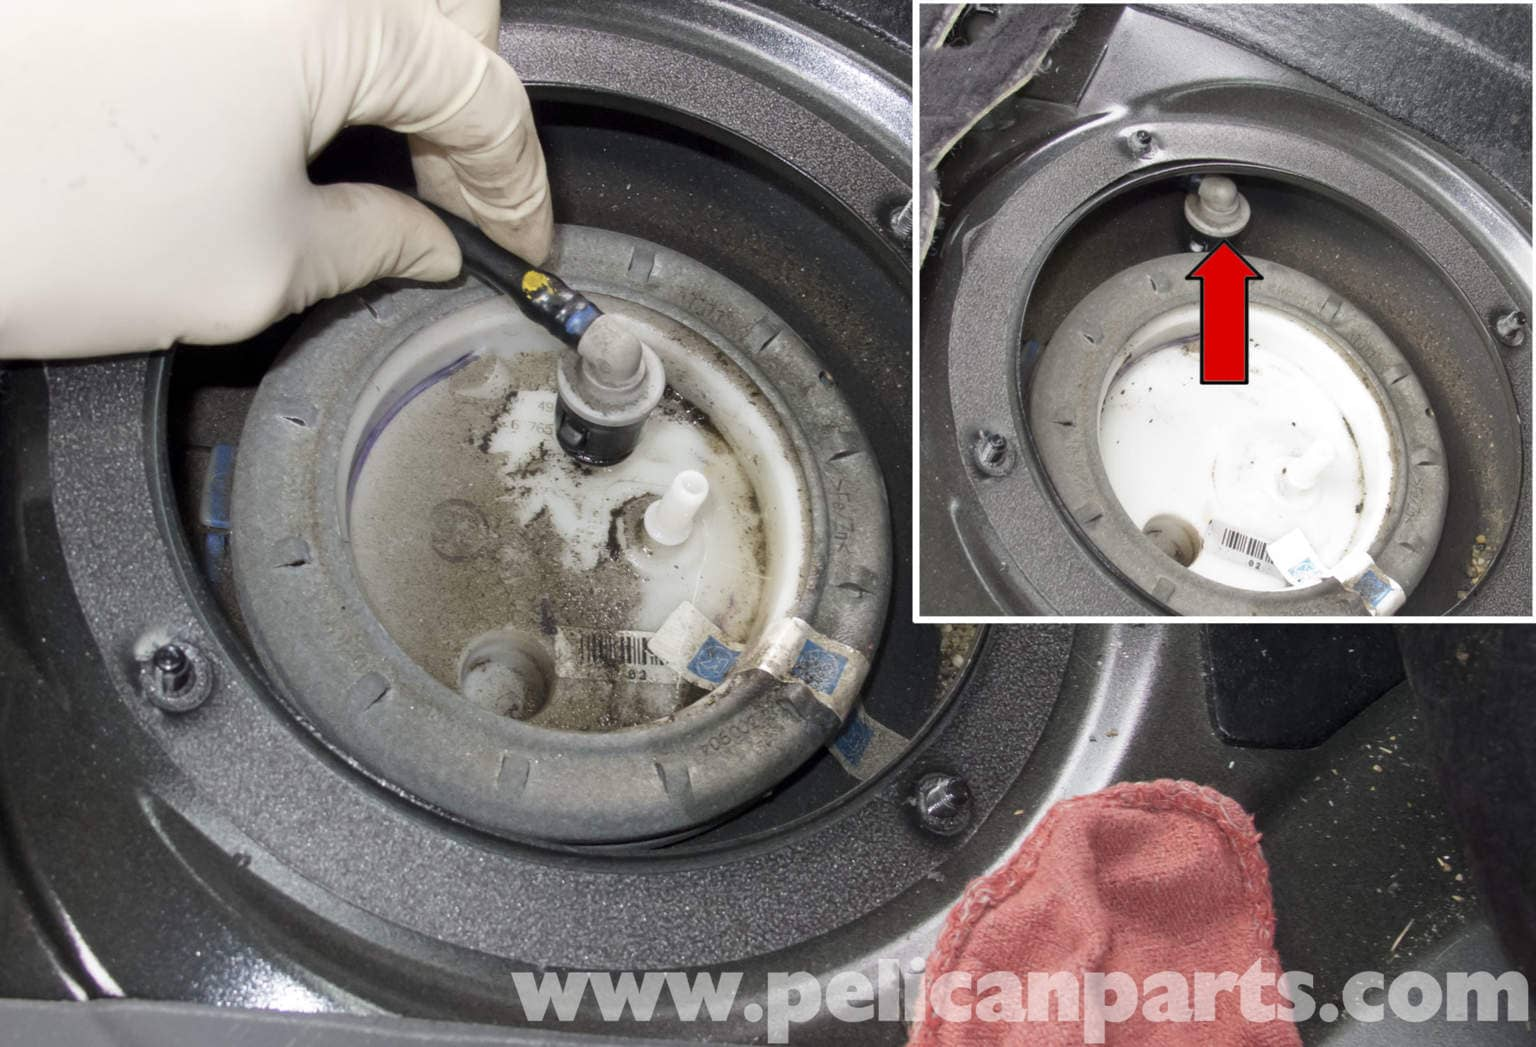 Fuel Pump Replacement : Bmw e series fuel pump replacement